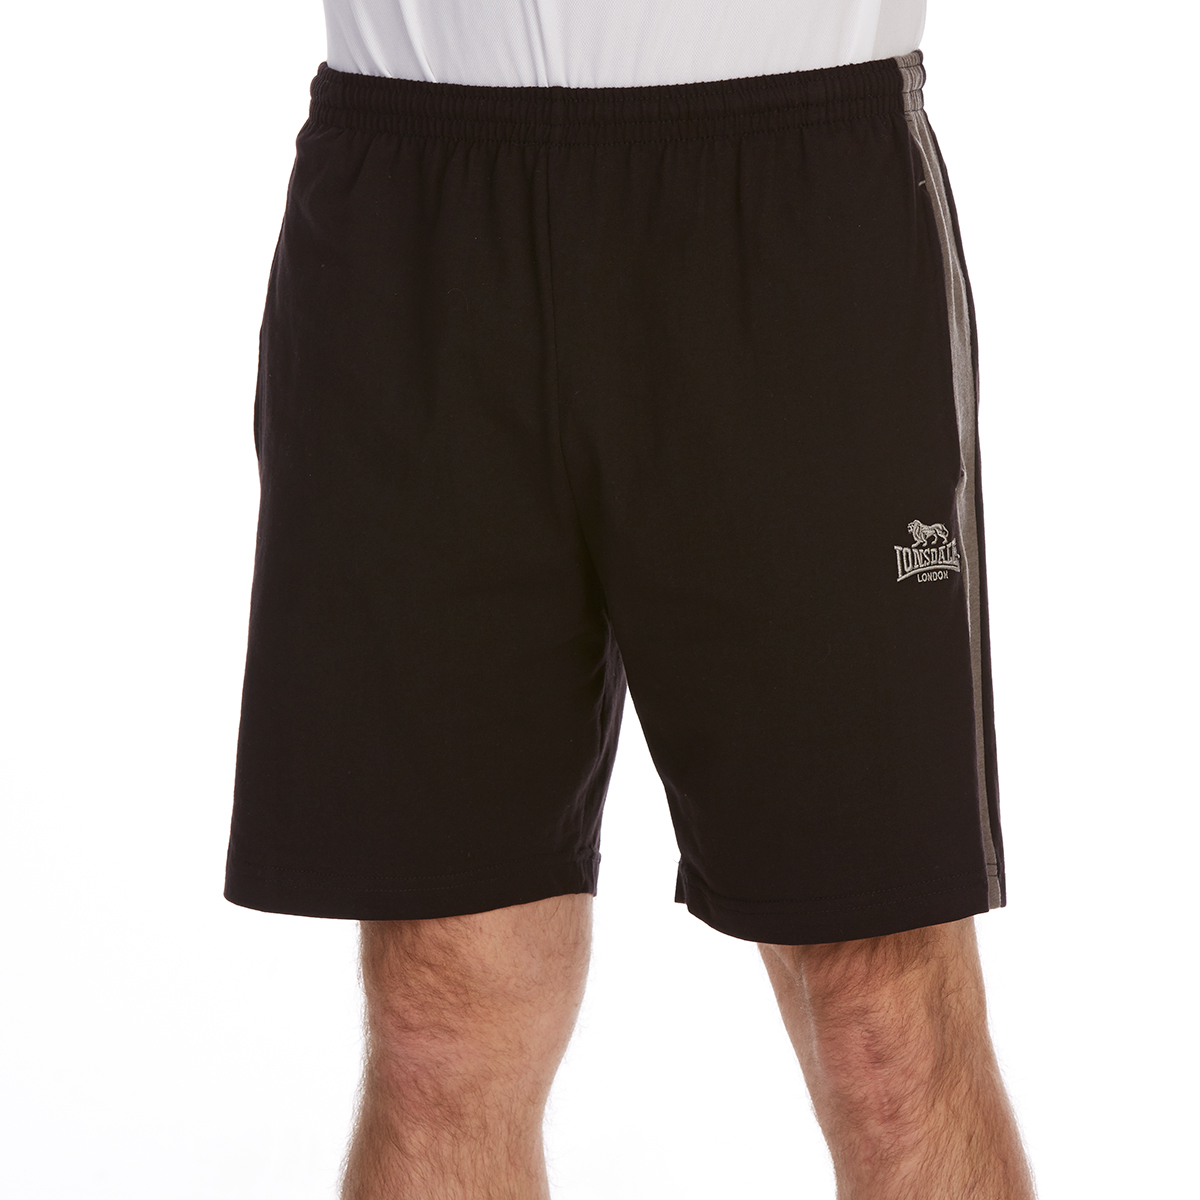 Lonsdale Men's Jersey Shorts - Black, XL